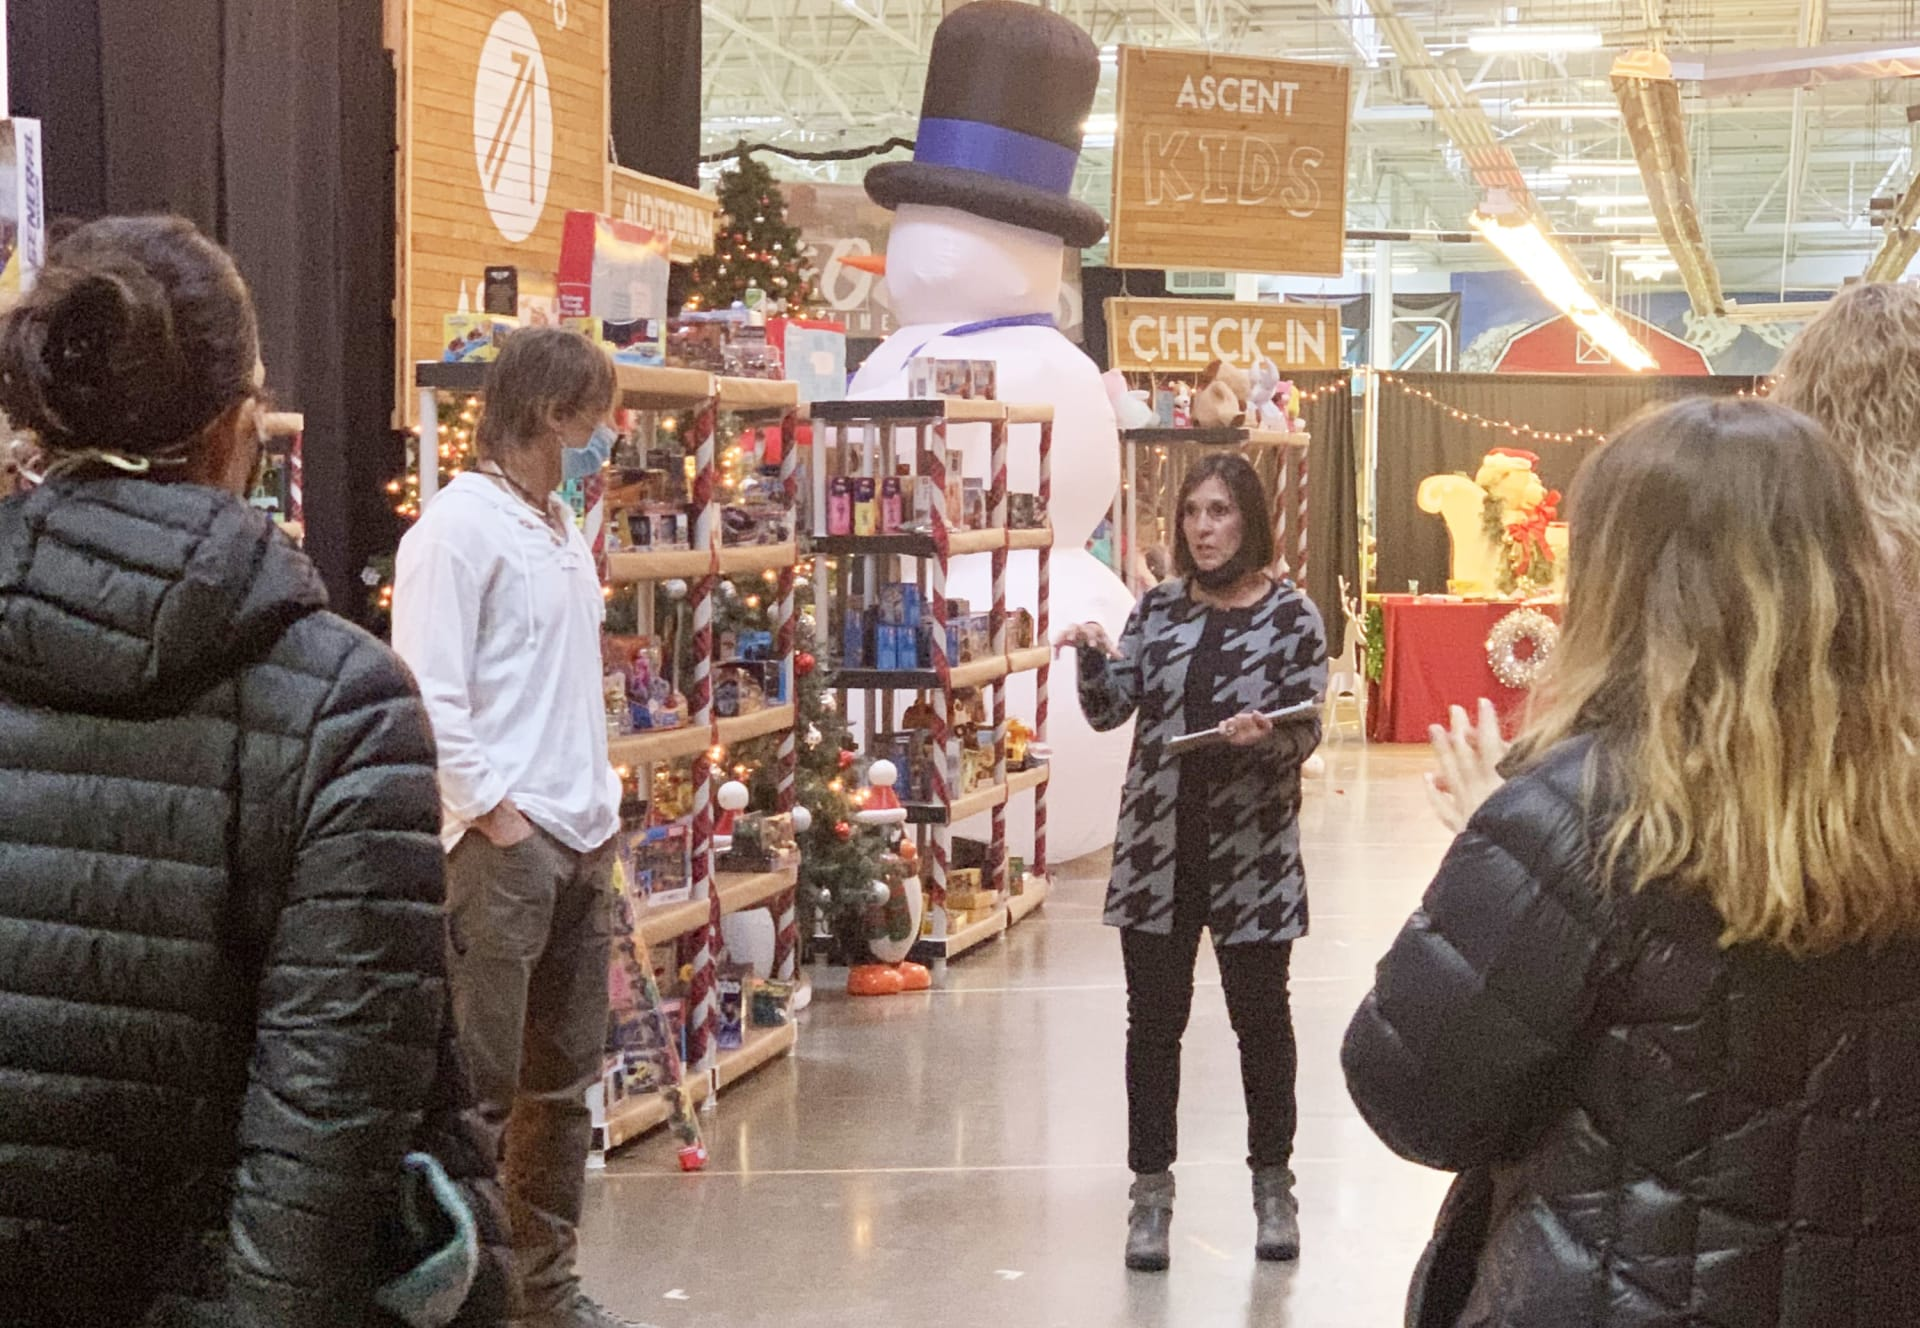 Tricia Dessel of Burgess Group | Compass in Boulder Supports the Ascent Christmas Shoppe